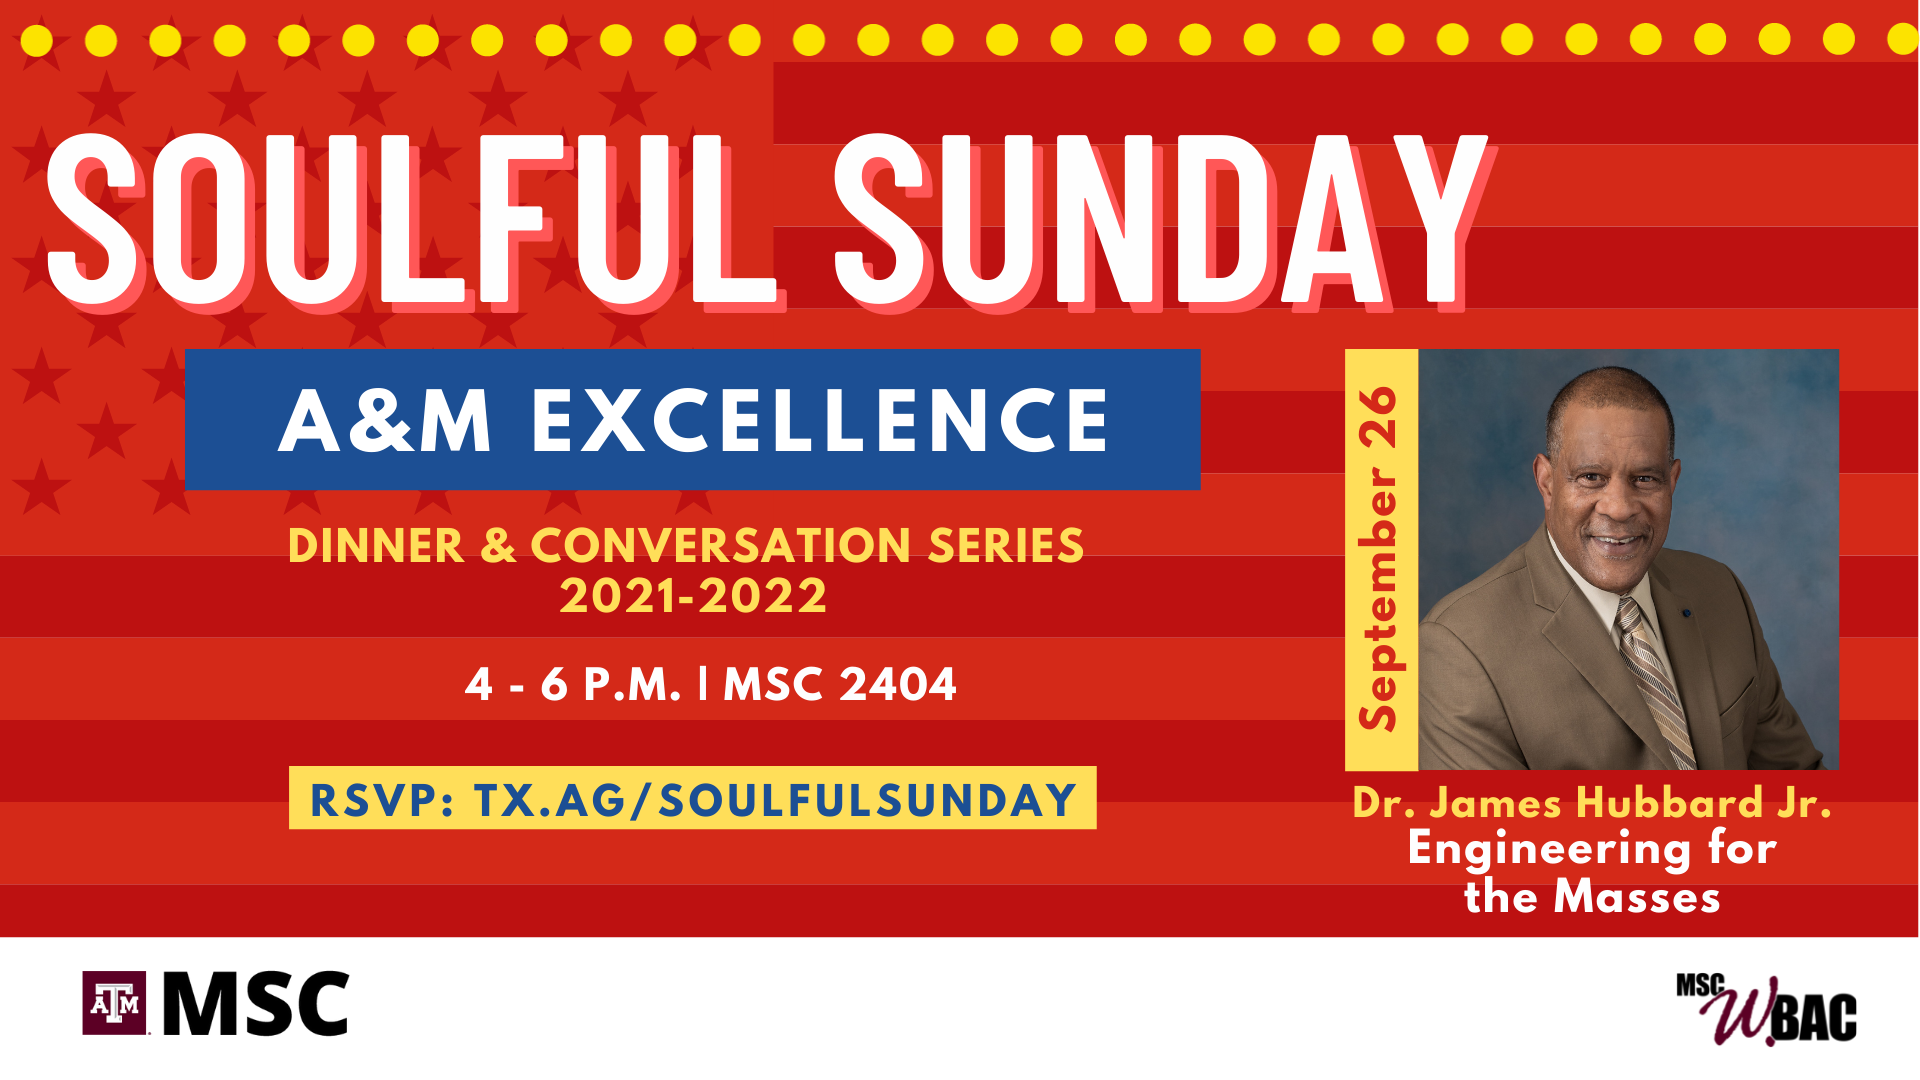 Soulful Sunday: A&M Excellence, Dinner & Conversation Series 2021-2022 Engineering for the Masses, with Dr. James Hubbard Jr., September 26, 4-6 p.m. at the MSC 2404. RSVP: tx.ag/soulfulsunday